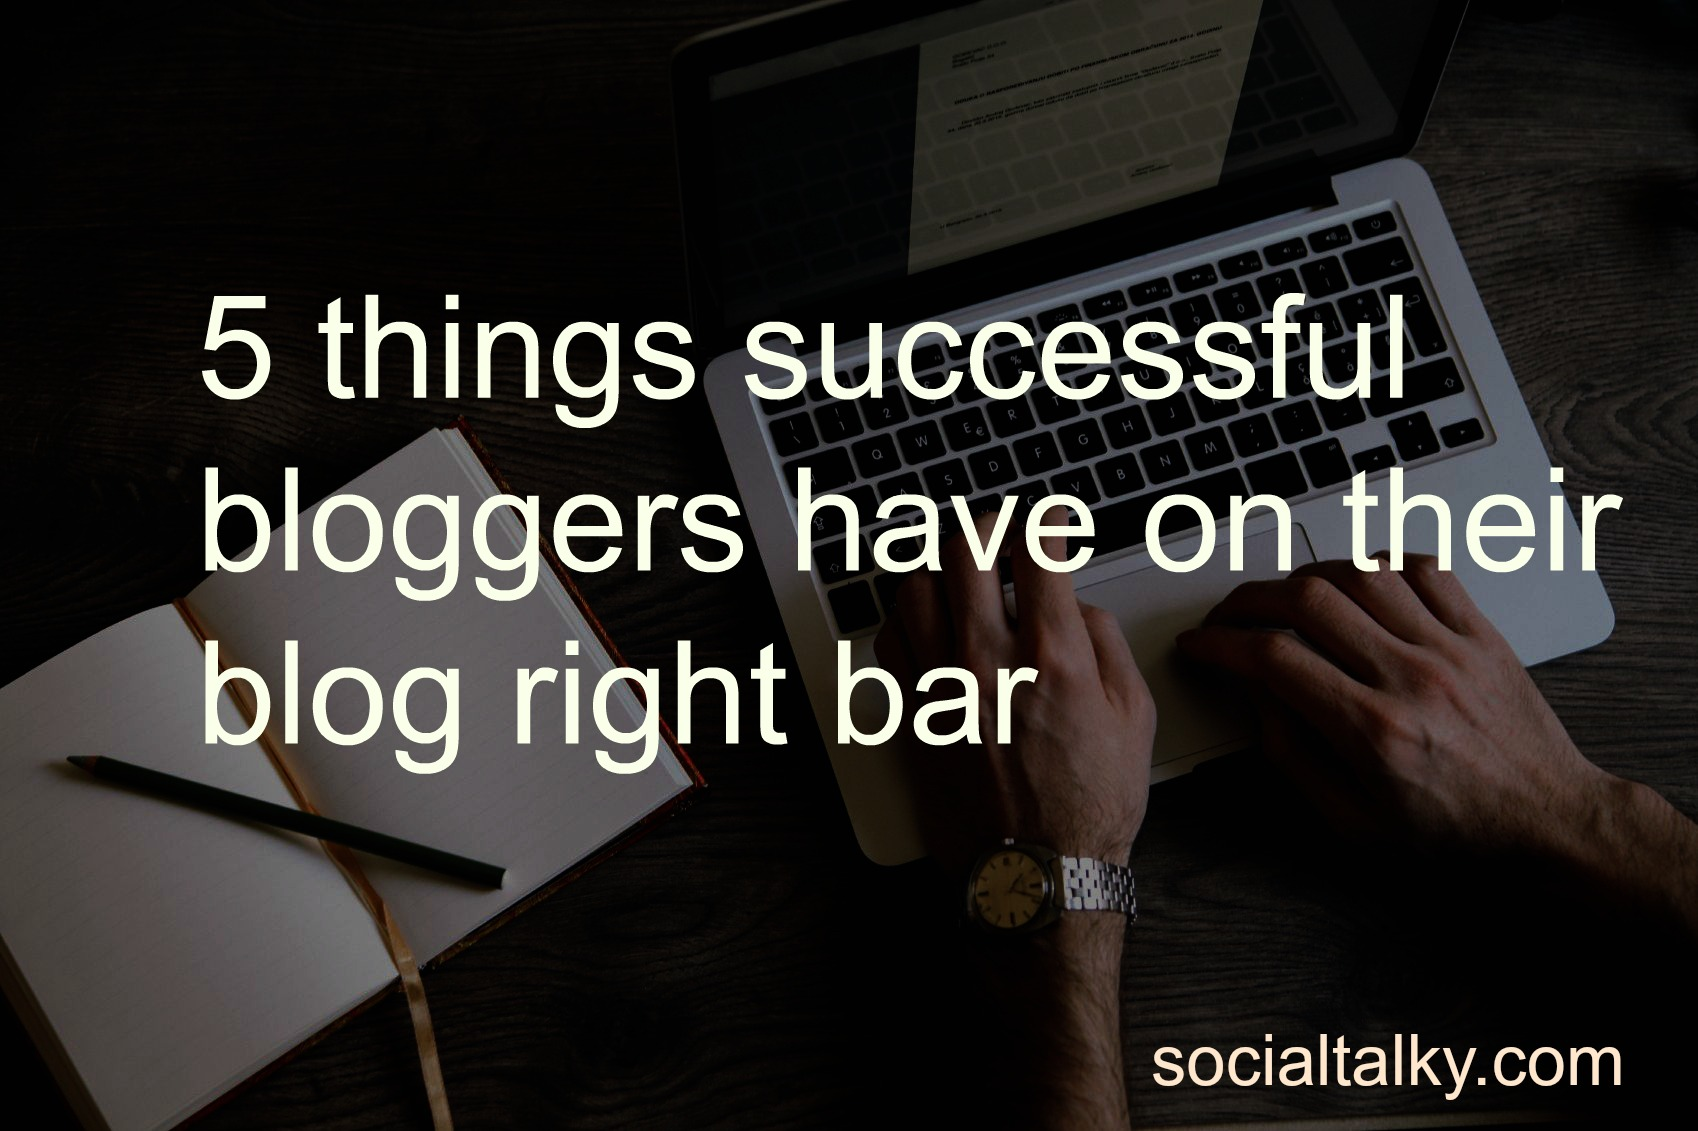 5 things successful bloggers have on their blog right bar